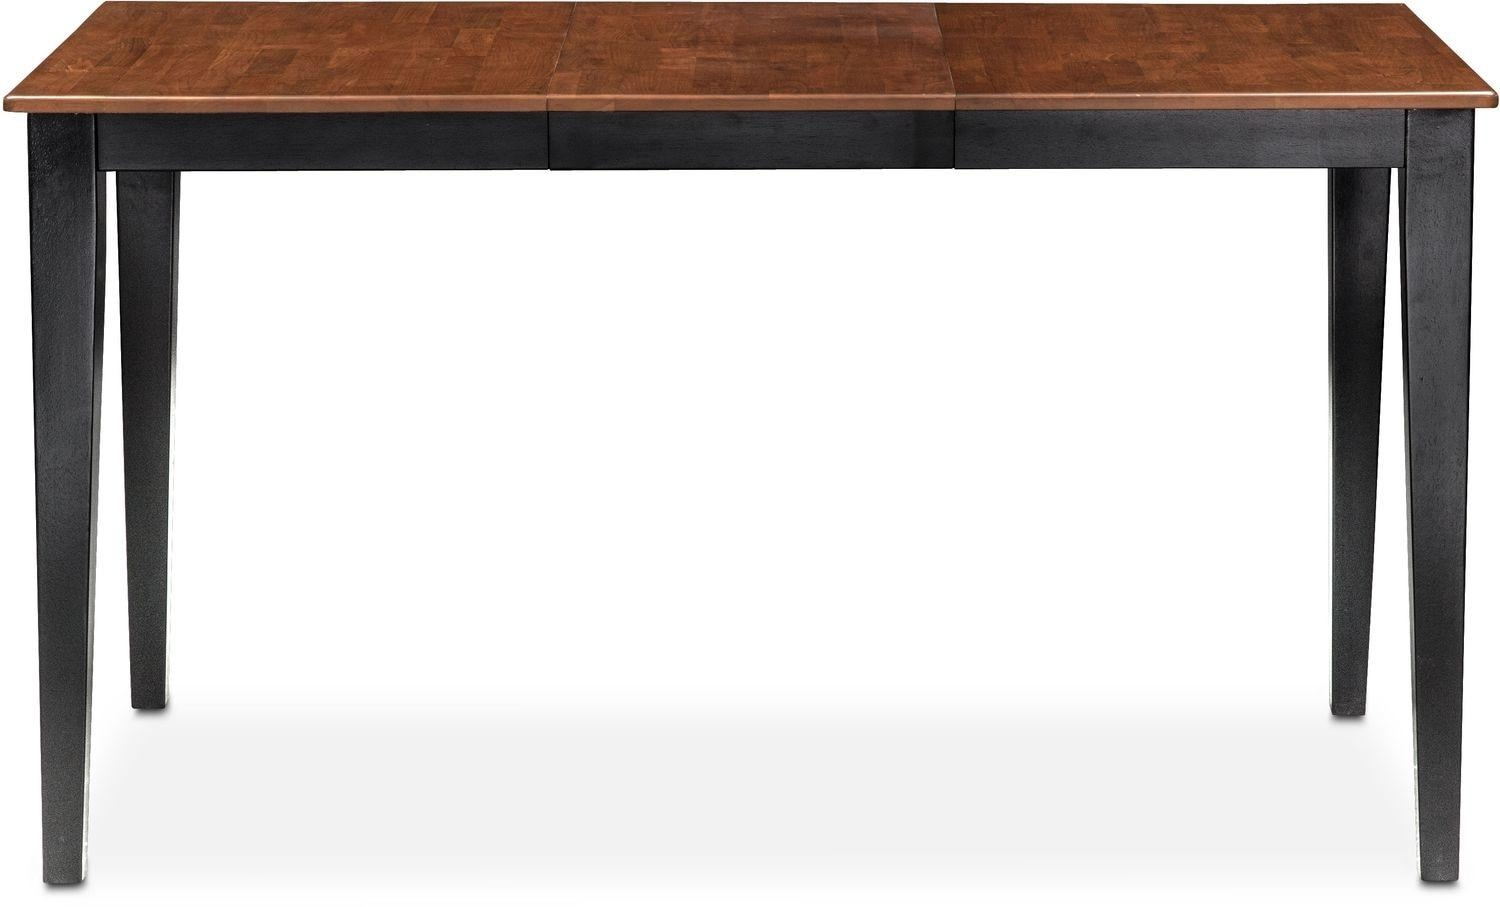 Nantucket Counter Height Table – Black And Cherry | Value City Pertaining To Counter Height Sofa Tables (View 10 of 20)